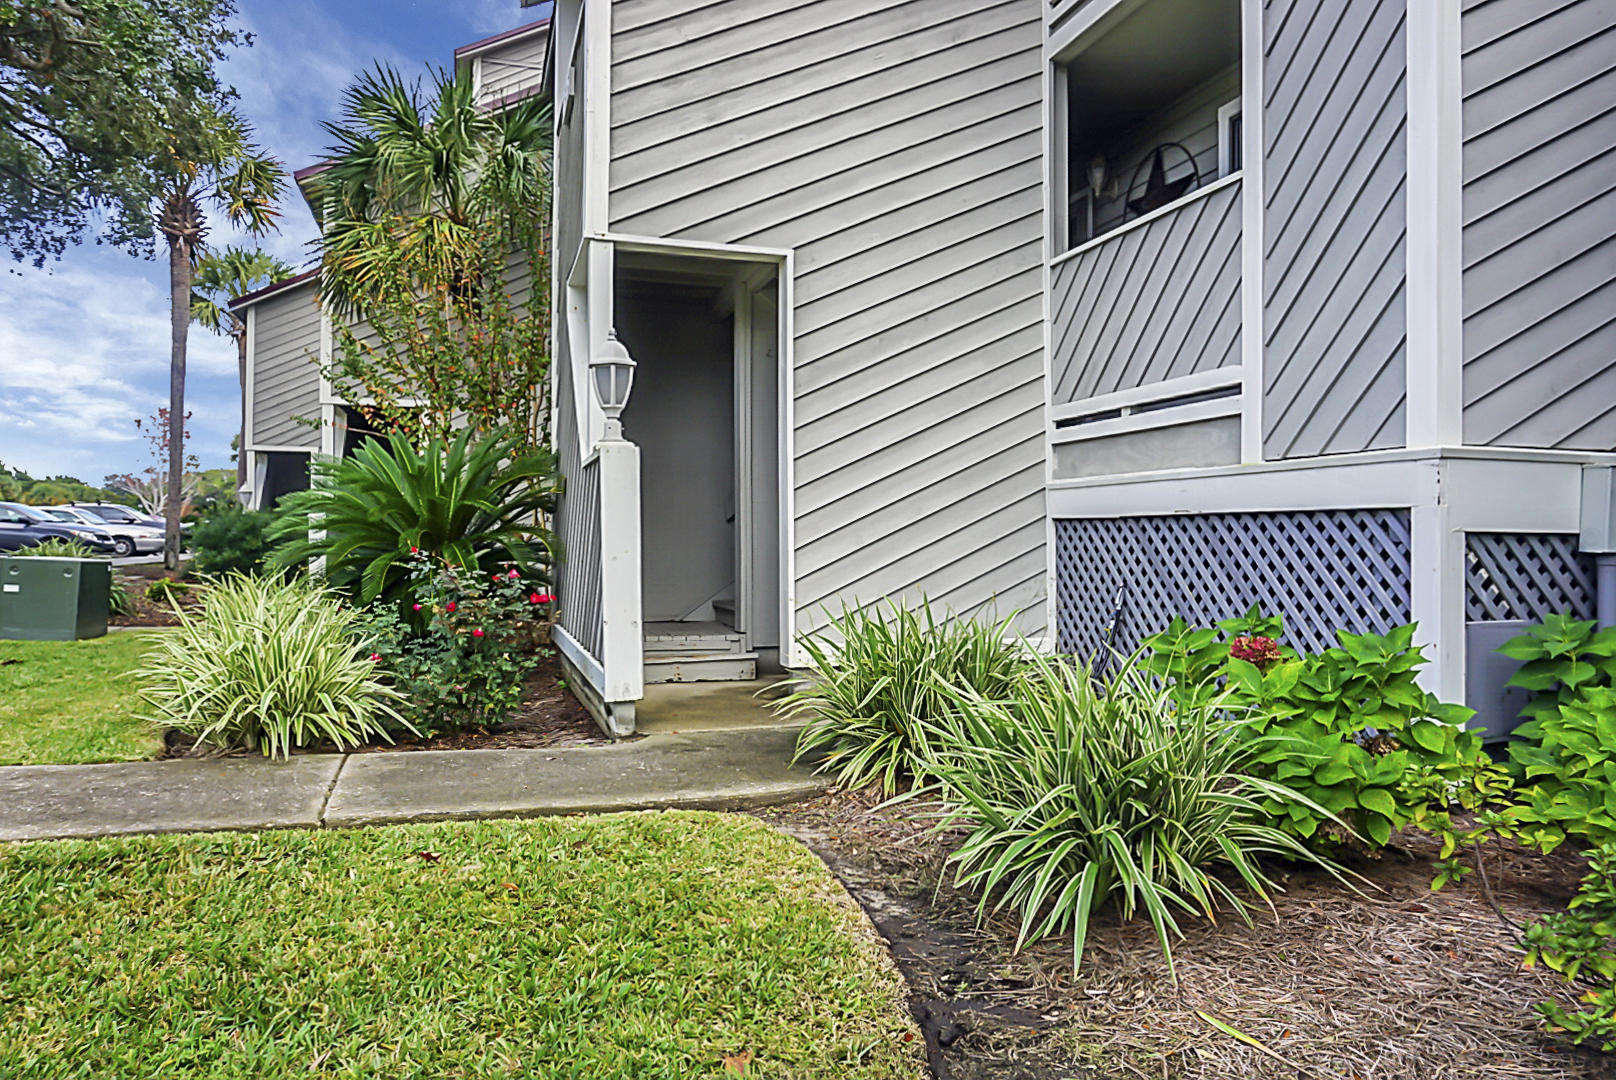 Mariners Cay Homes For Sale - 45 Mariners Cay, Folly Beach, SC - 48